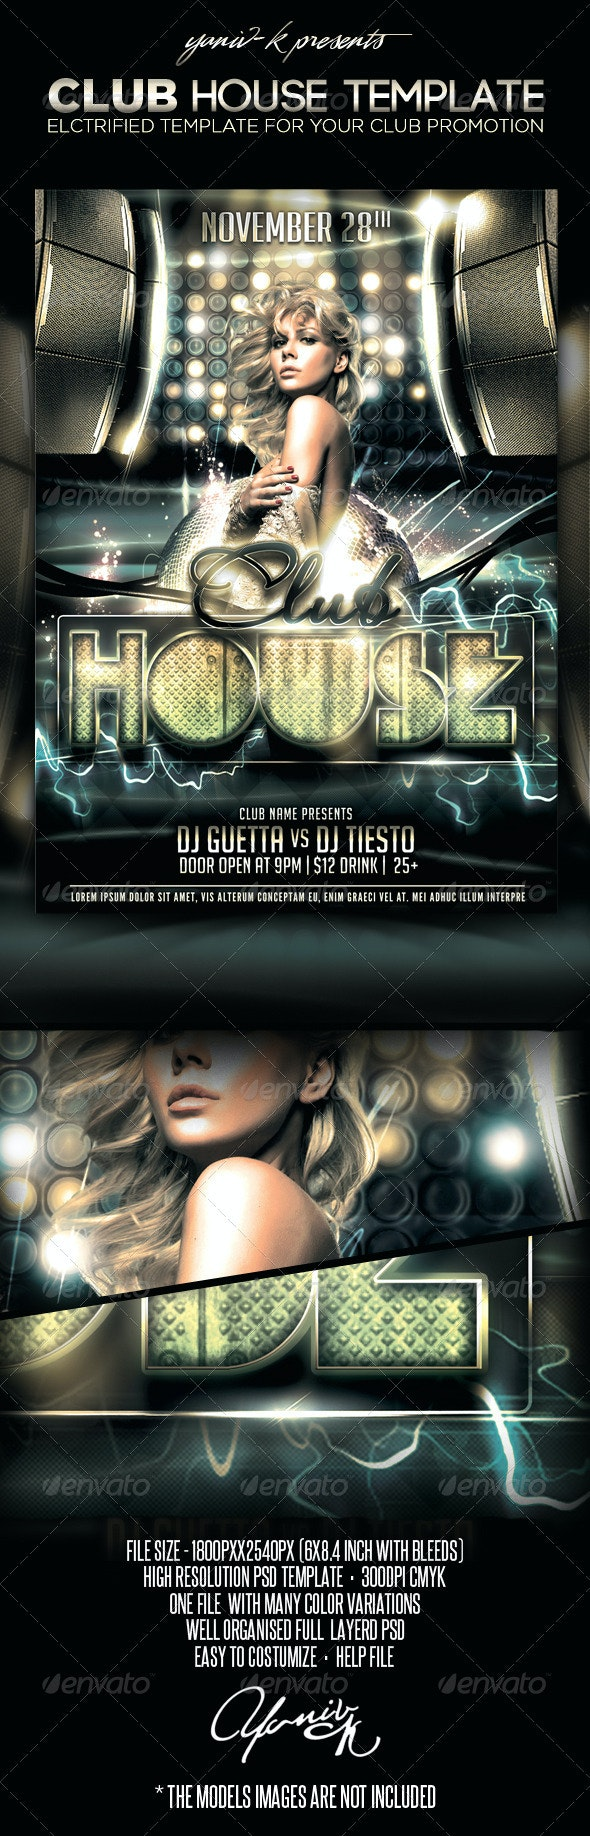 Club House Flyer Template - Clubs & Parties Events